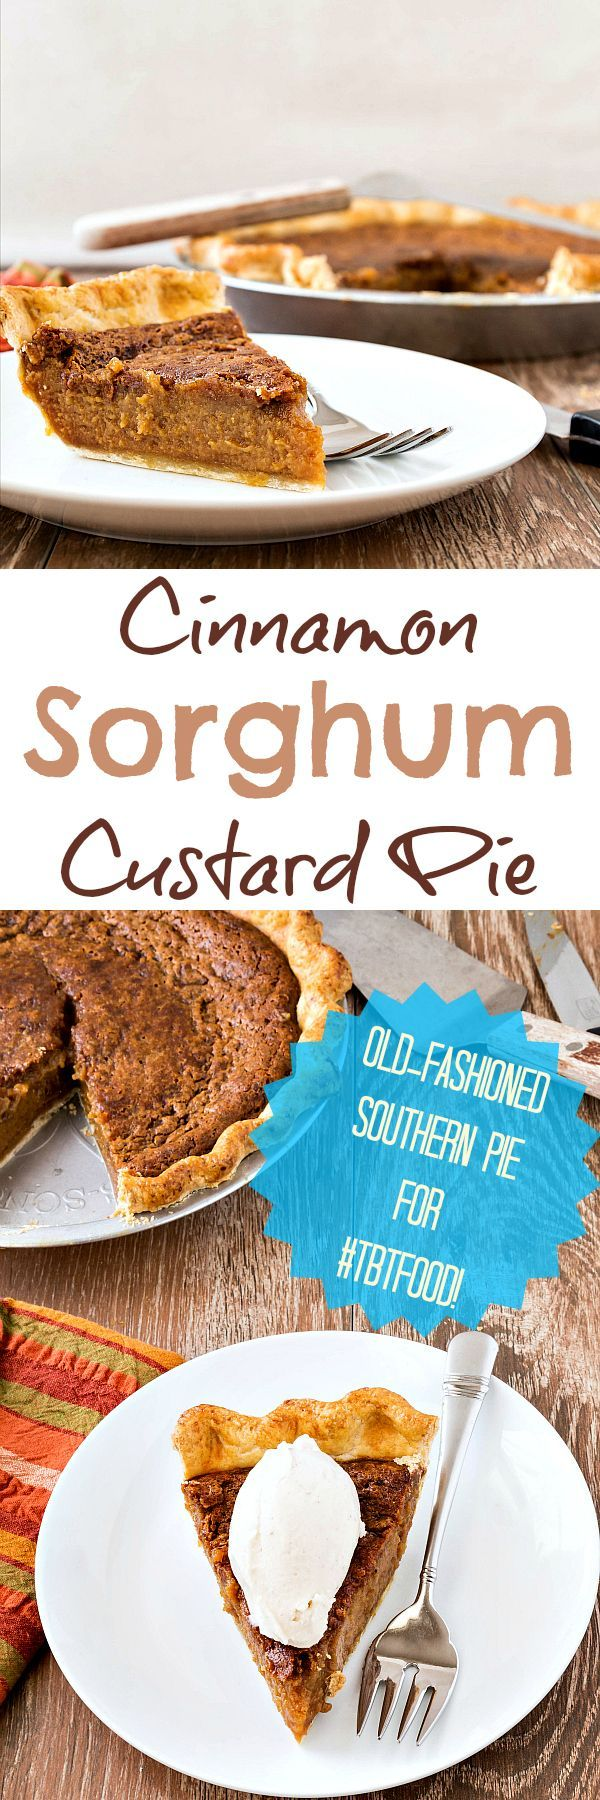 This Cinnamon Sorghum Custard Pie recipe is based on one found in a Charleston, SC newspaper. If you have never tried sorghum syrup, I highly recommend seeking some out and then making this pie recipe. Sorghum syrup is amber-colored and complex. It tastes a bit like molasses but without bitterness. It is a flavor like no other, and I think you will love it! | http://pastrychefonline.com